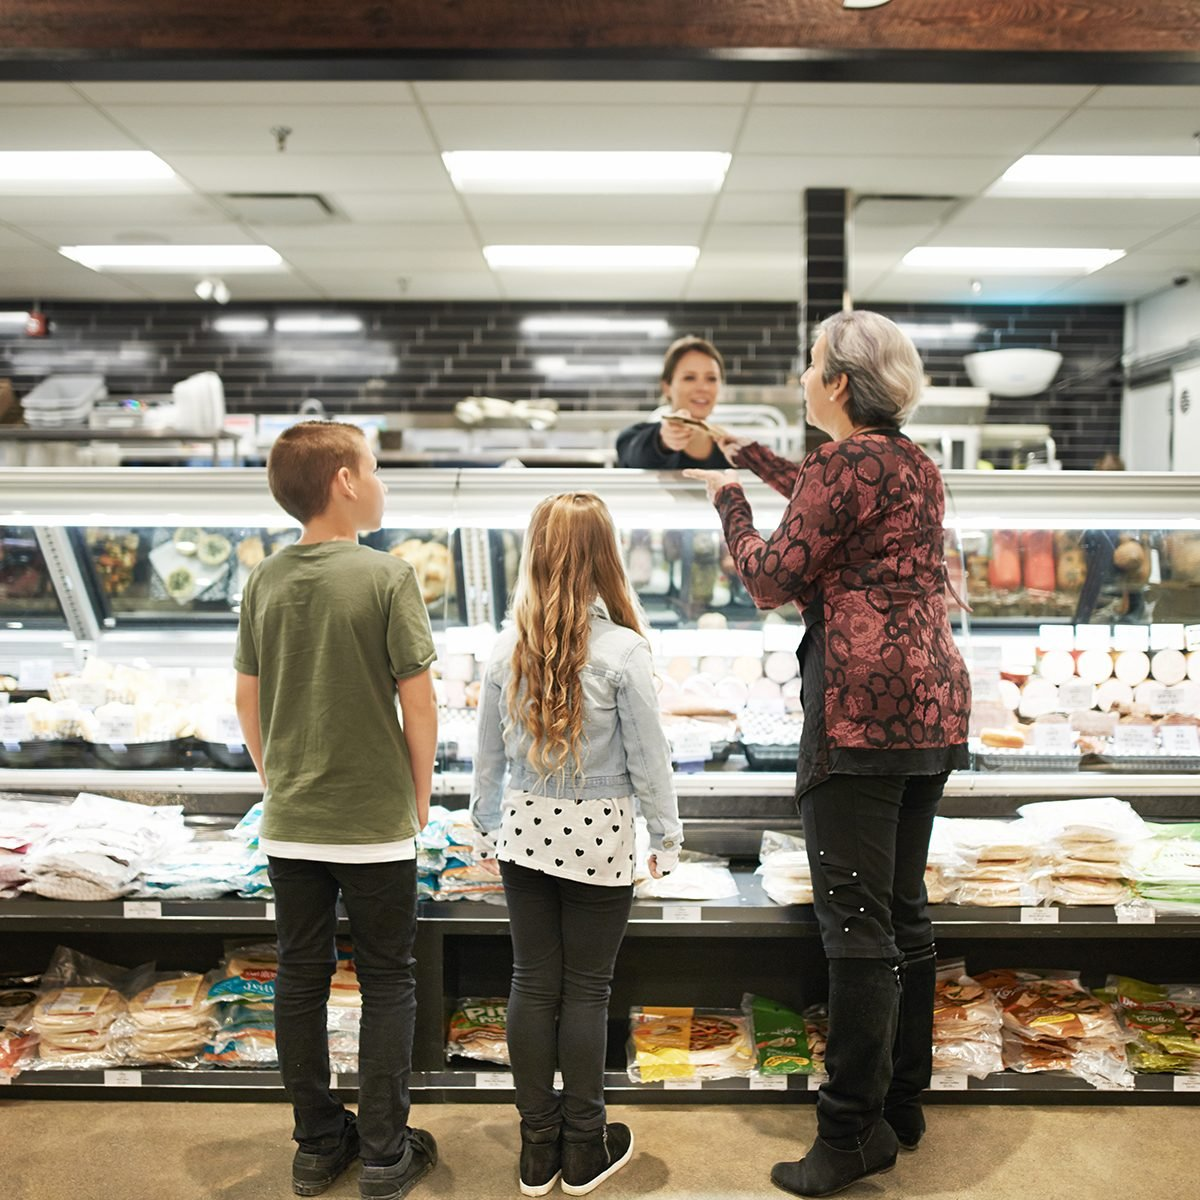 Shot of a mature woman shopping with her grandchildren at a grocery store